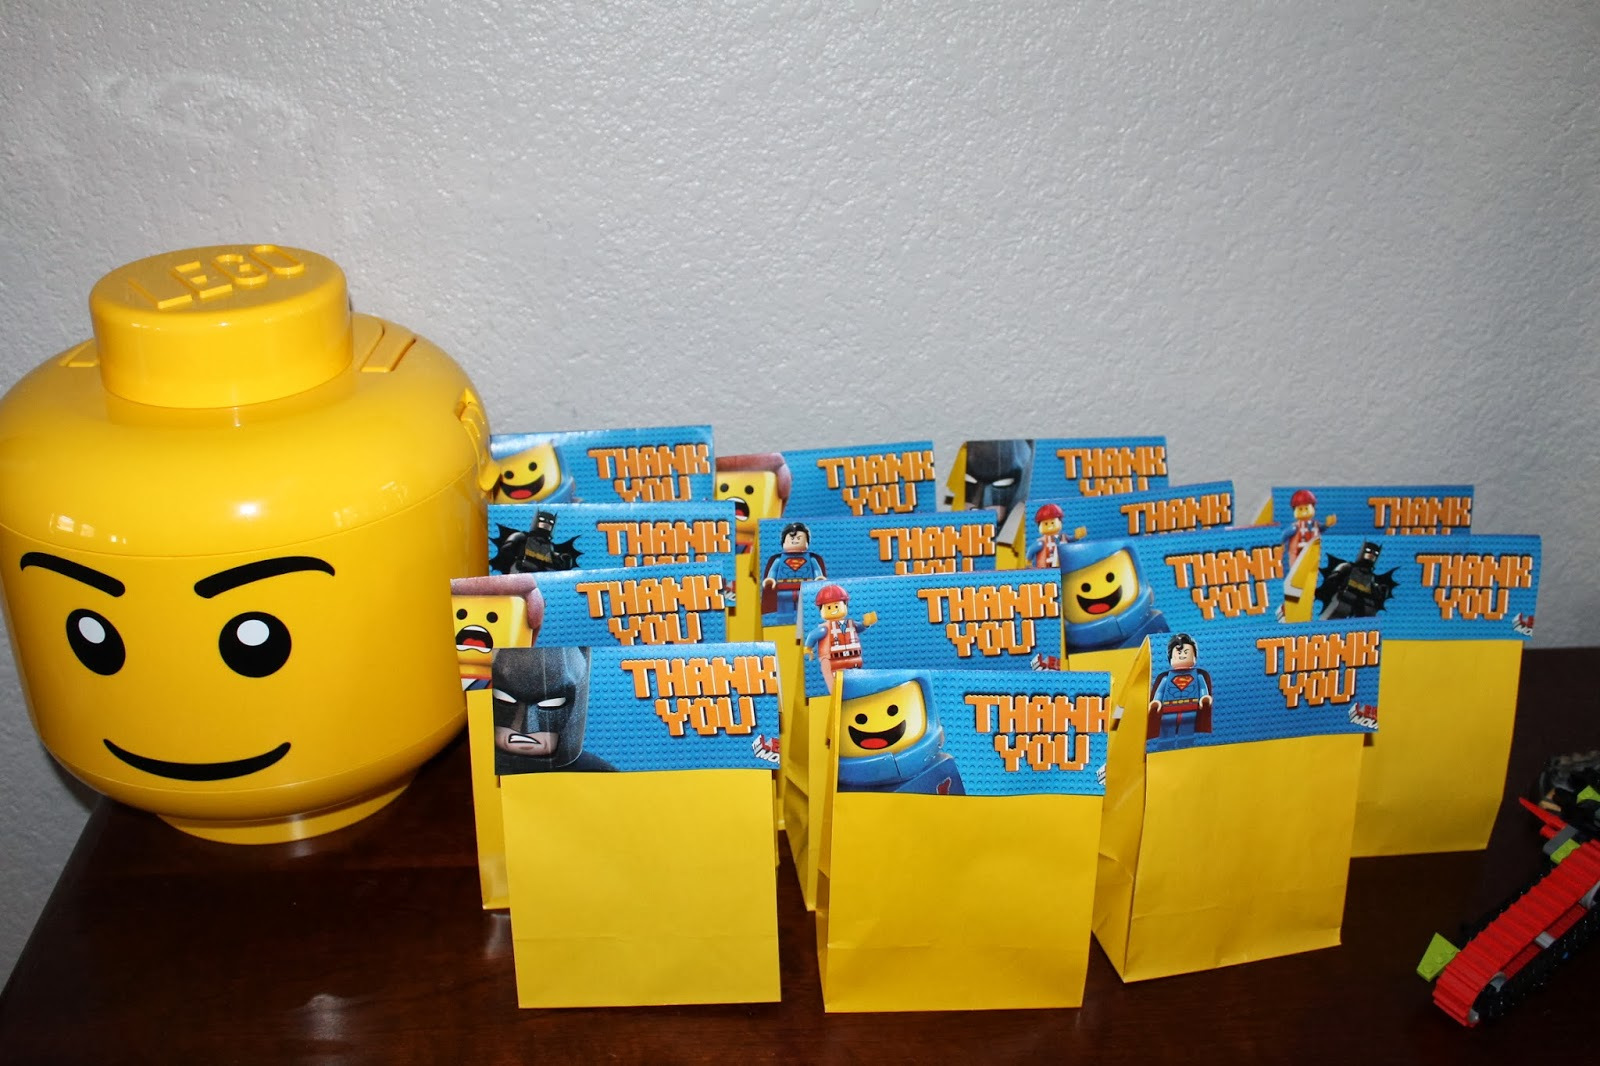 And The Contents Of Goody Bags A Lego Movie Mystery Minifigure Pencil Eraser Some Stickers Candy Bar In